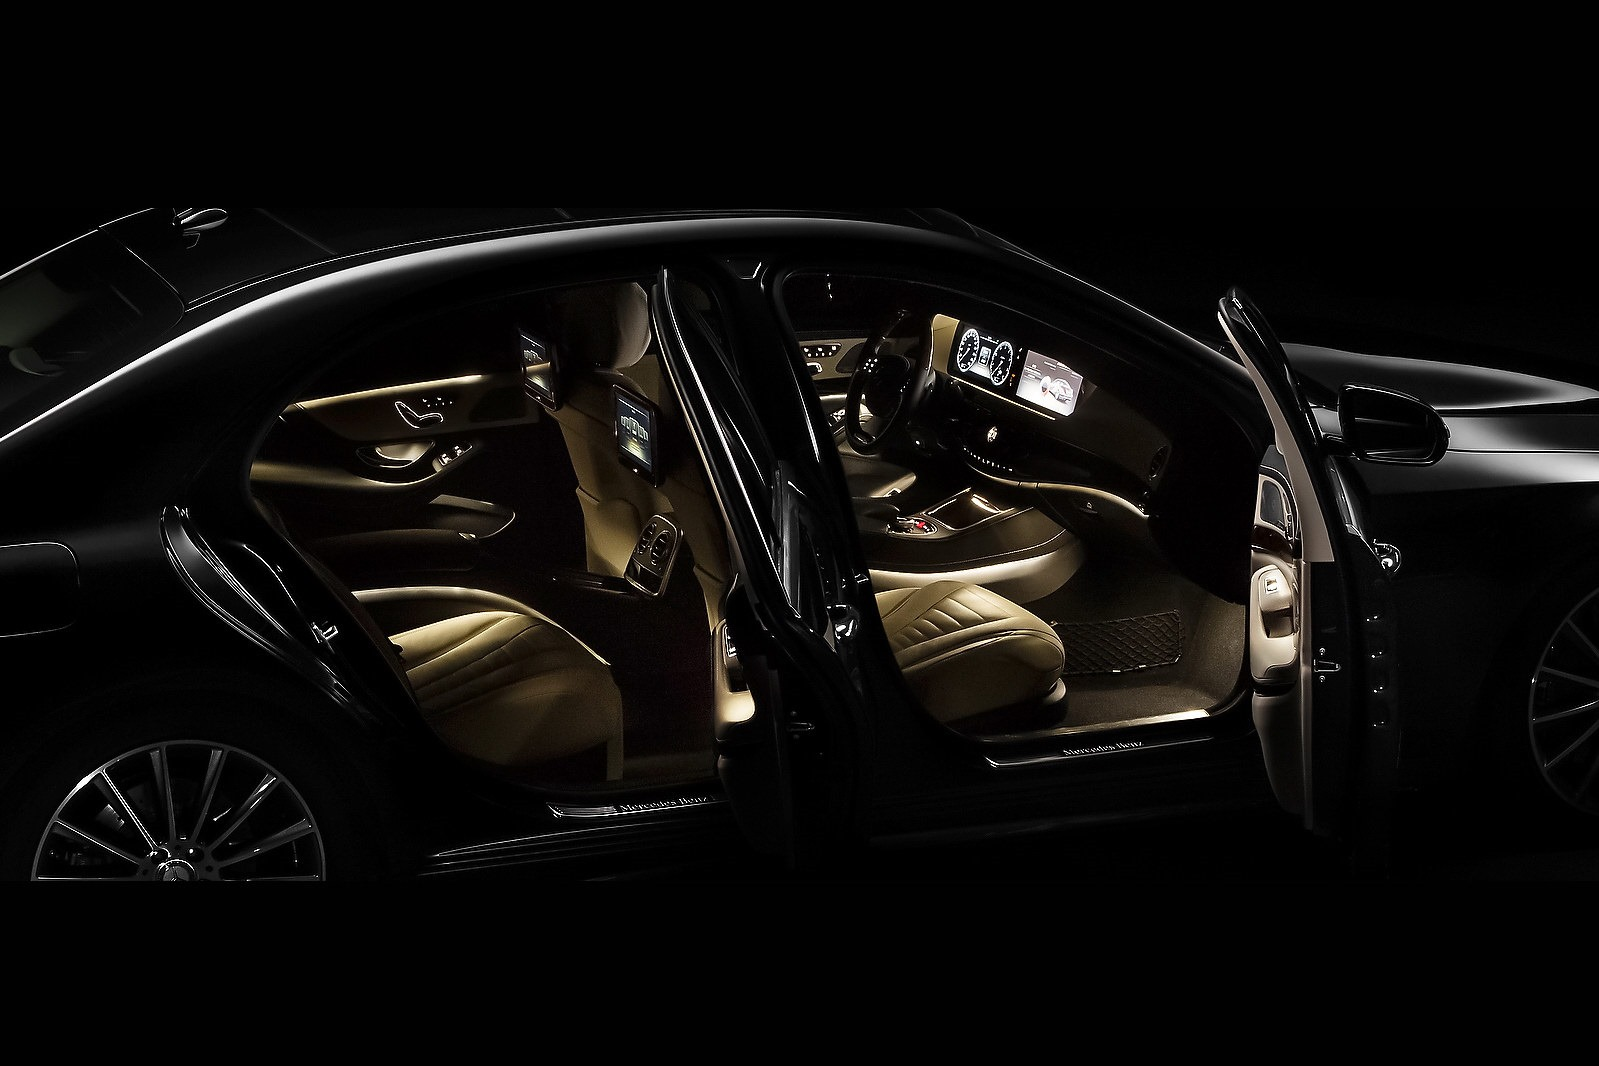 2014 mercedes benz s class interior. Black Bedroom Furniture Sets. Home Design Ideas